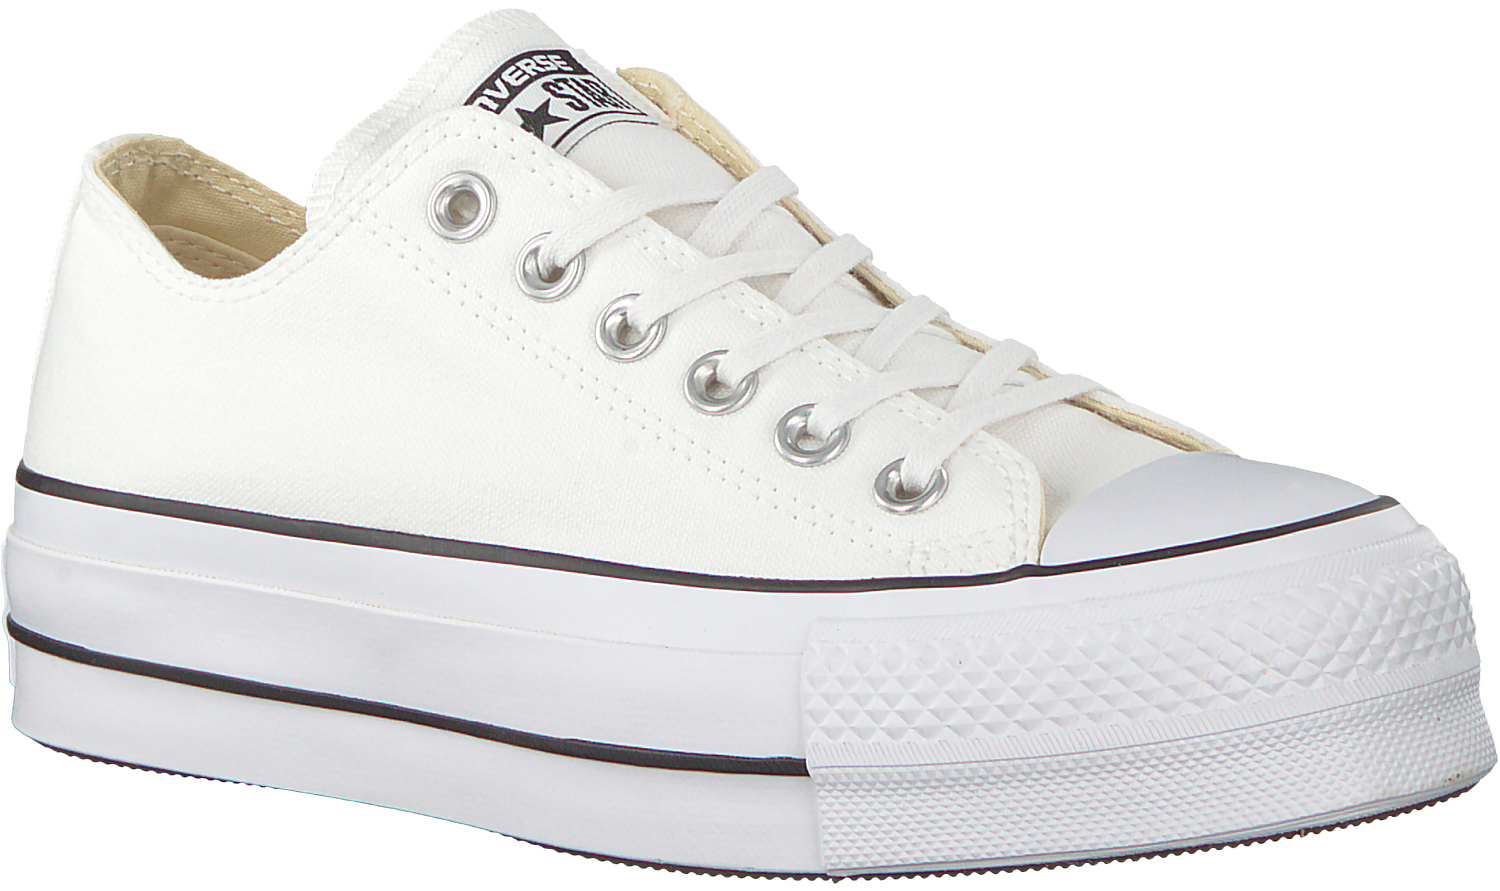 fe23e3be209 Witte CONVERSE Sneakers CHUCK TAYLOR ALL STAR LIFT. CONVERSE. Previous